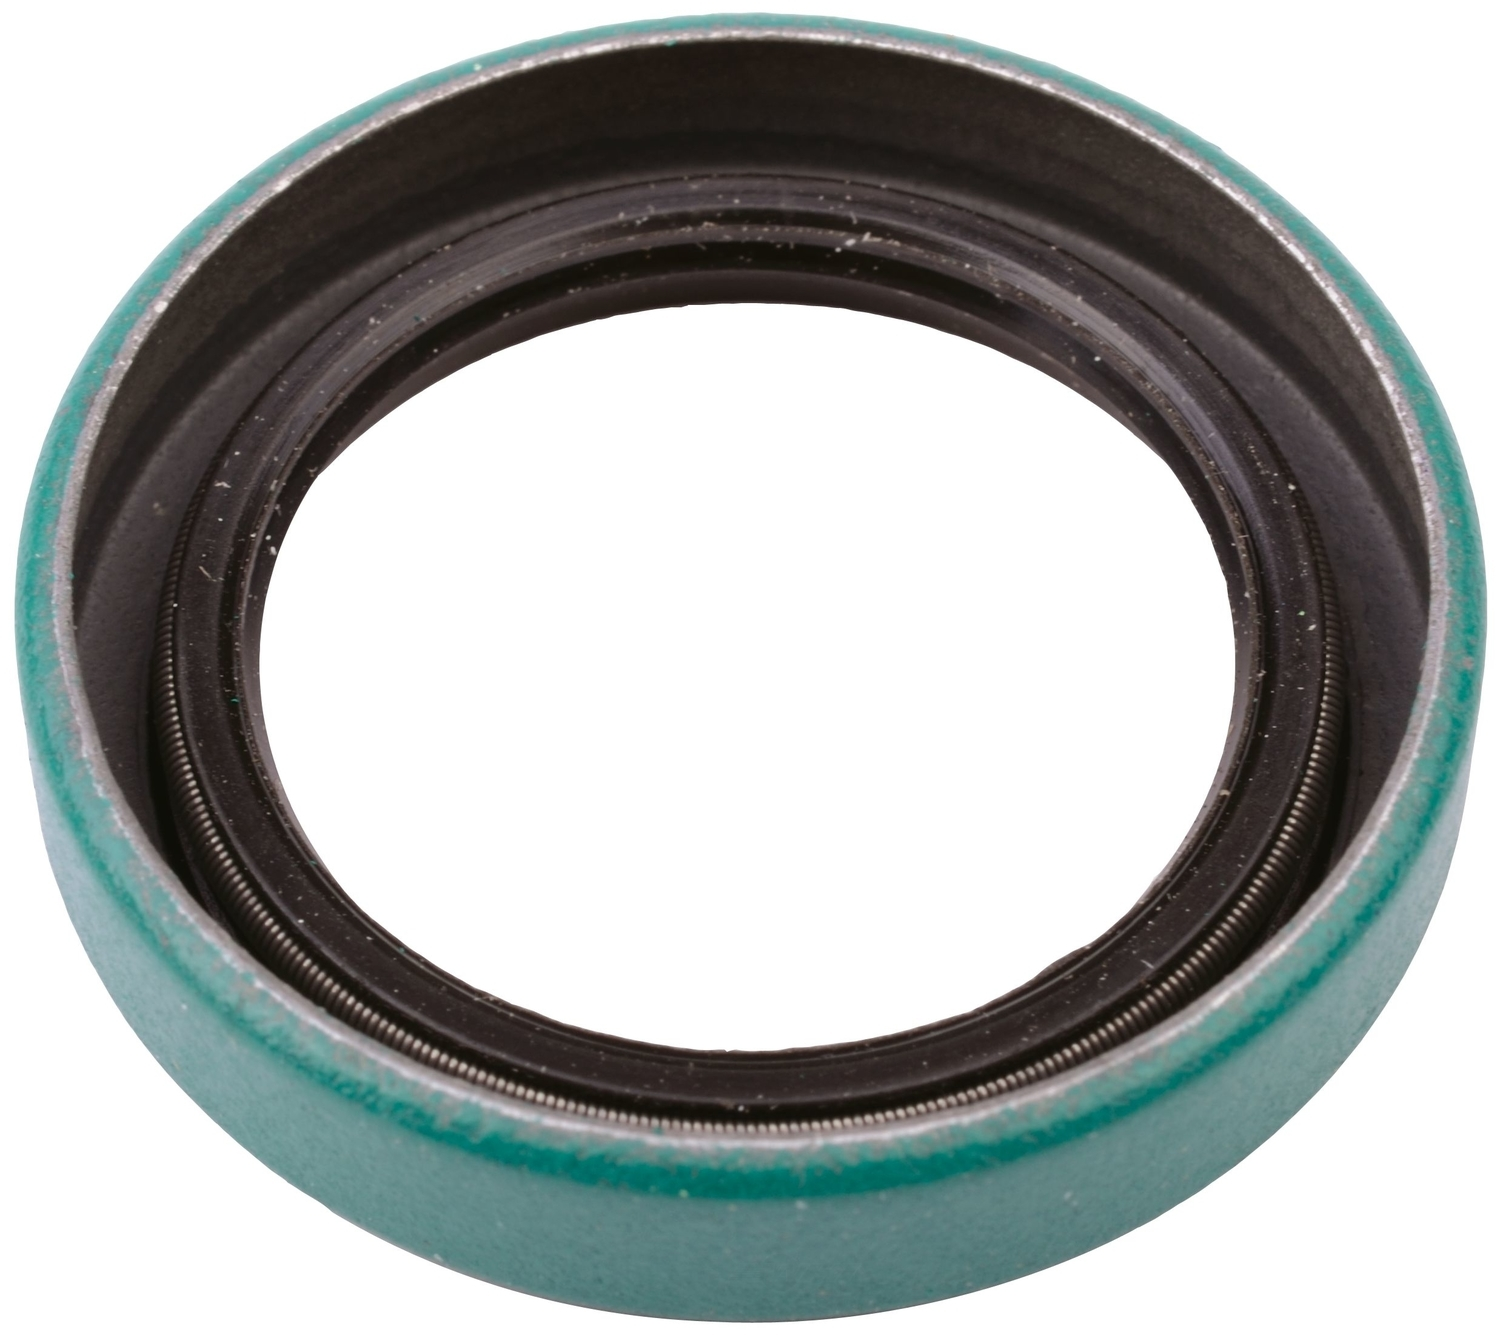 SKF (CHICAGO RAWHIDE) - Manual Trans Input Shaft Seal - SKF 9705